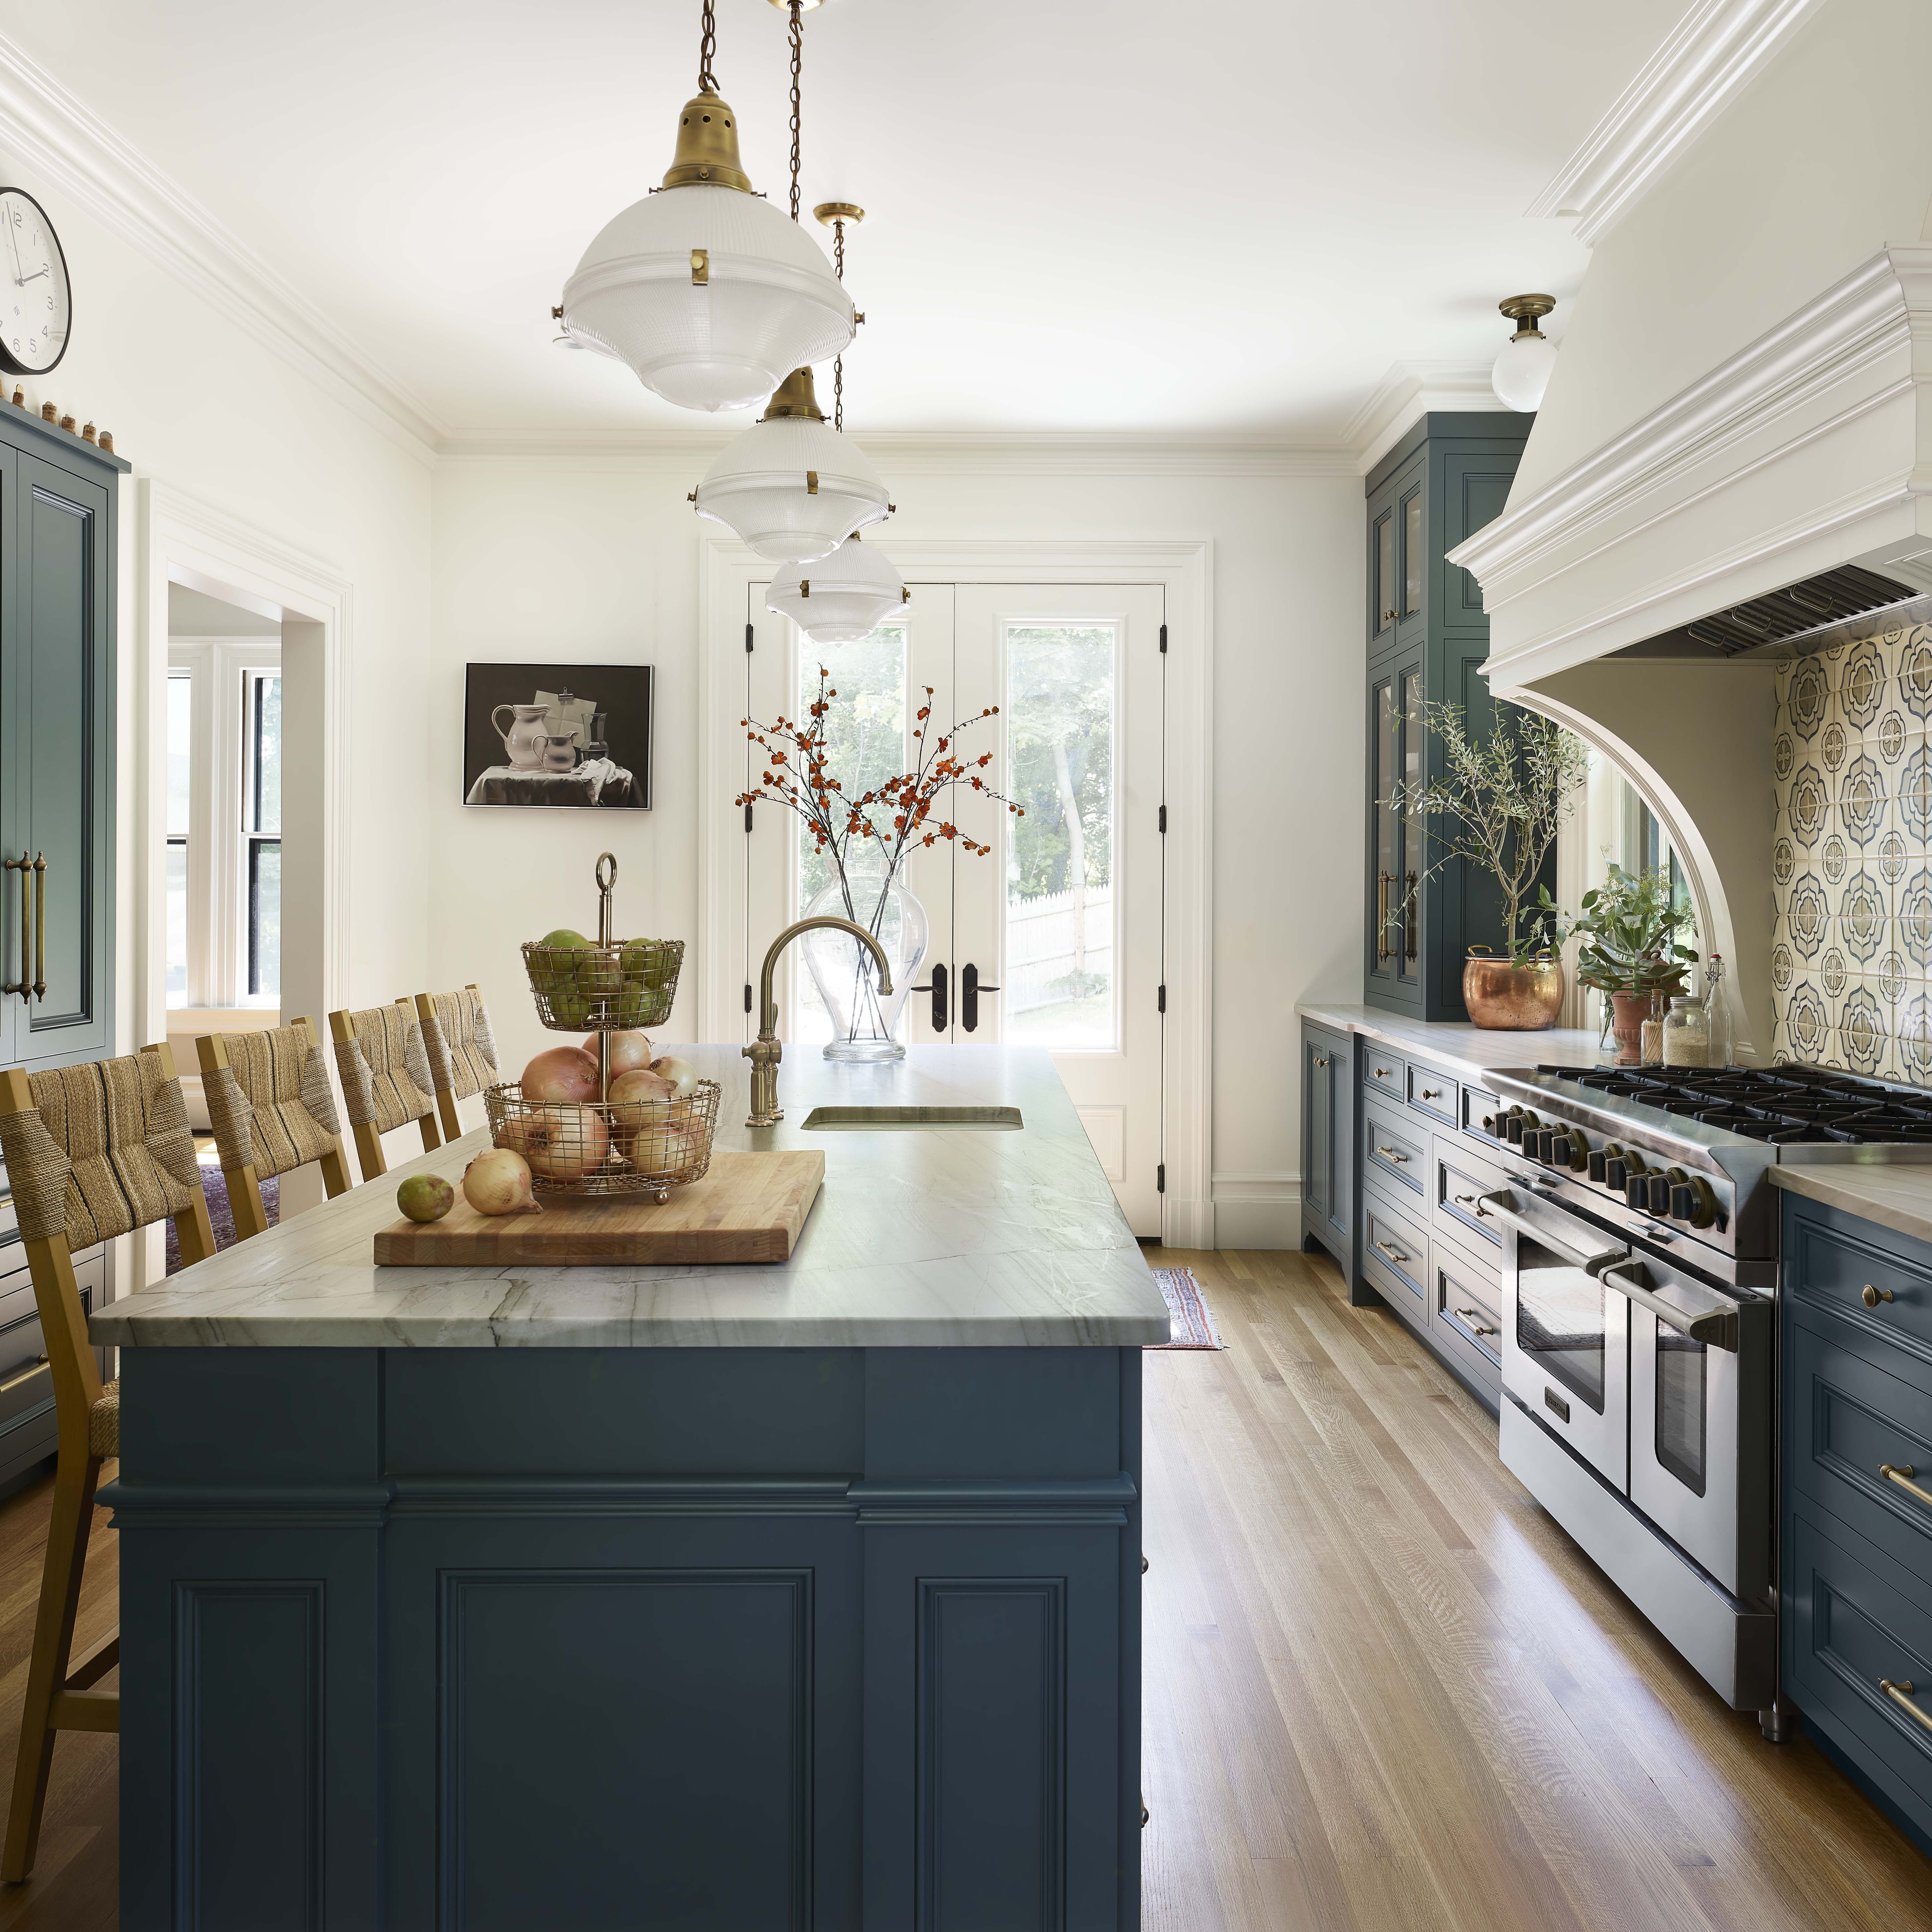 Tour a Historic New England Kitchen That Feels Both Fresh and Authentic